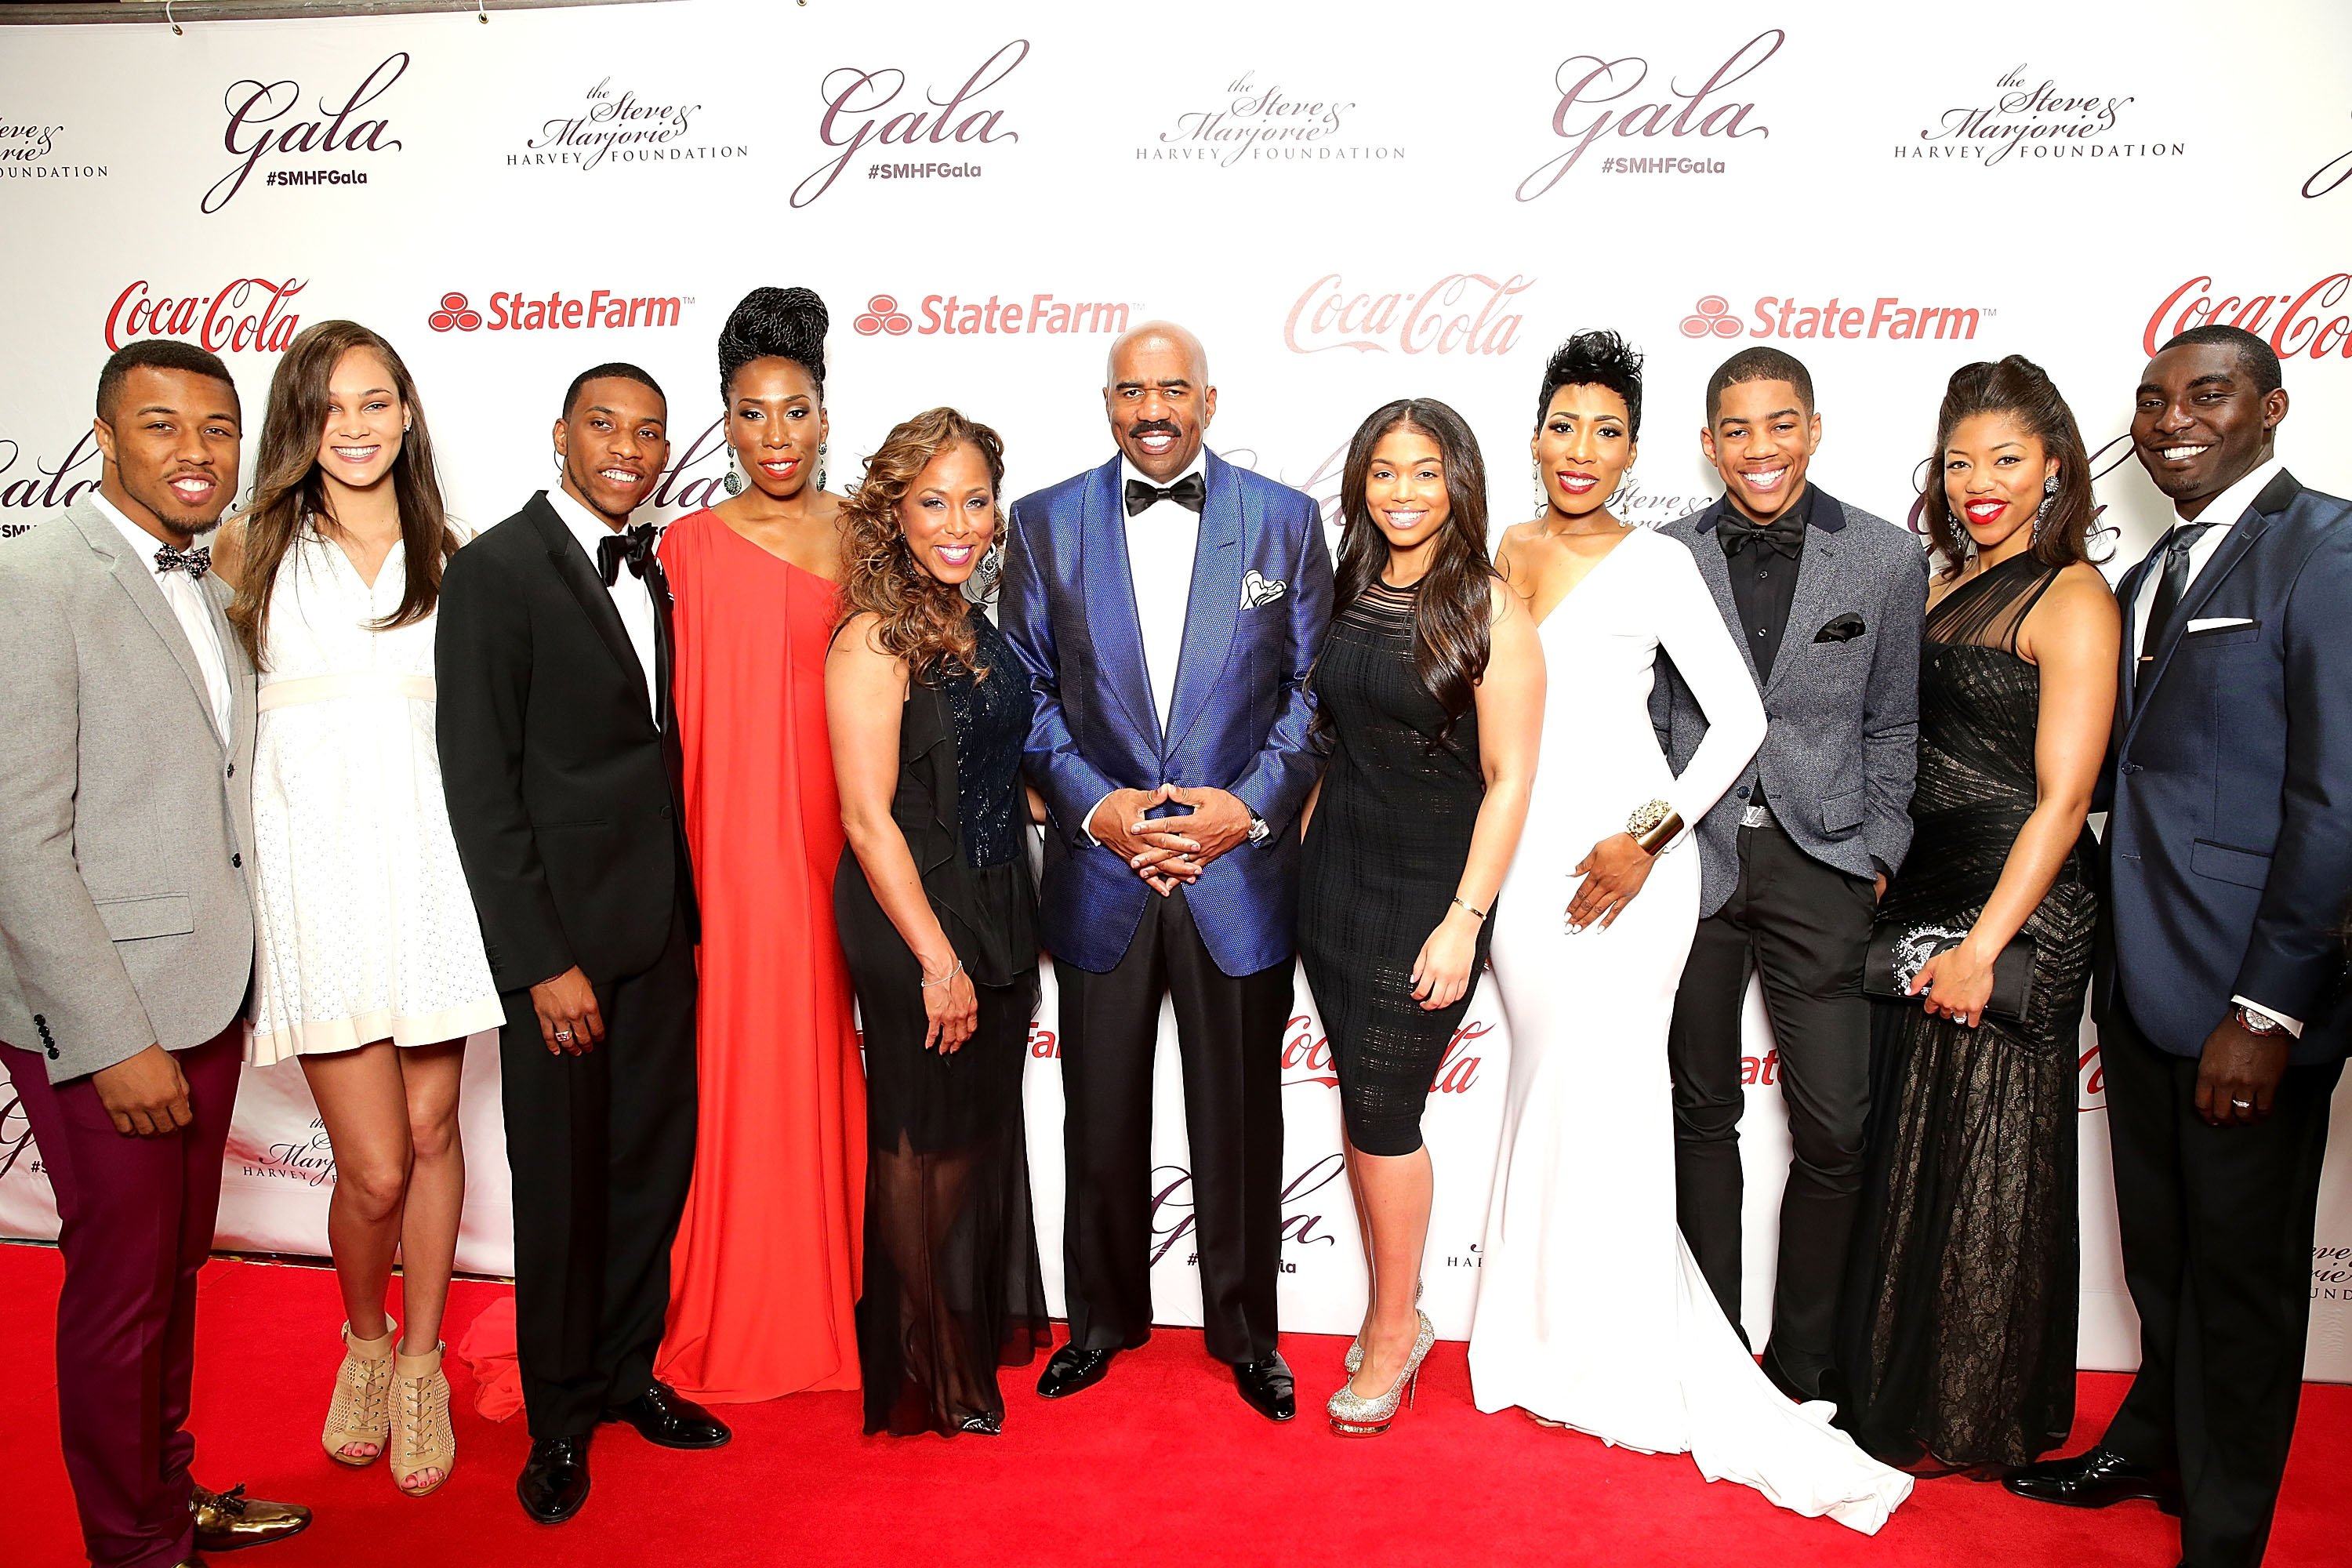 Marjorie and Steve Harvey attend the 2014 Steve & Marjorie Harvey Foundation Gala with their big brood on May 3, 2014 in Chicago, Illinois. | Source: Getty Images